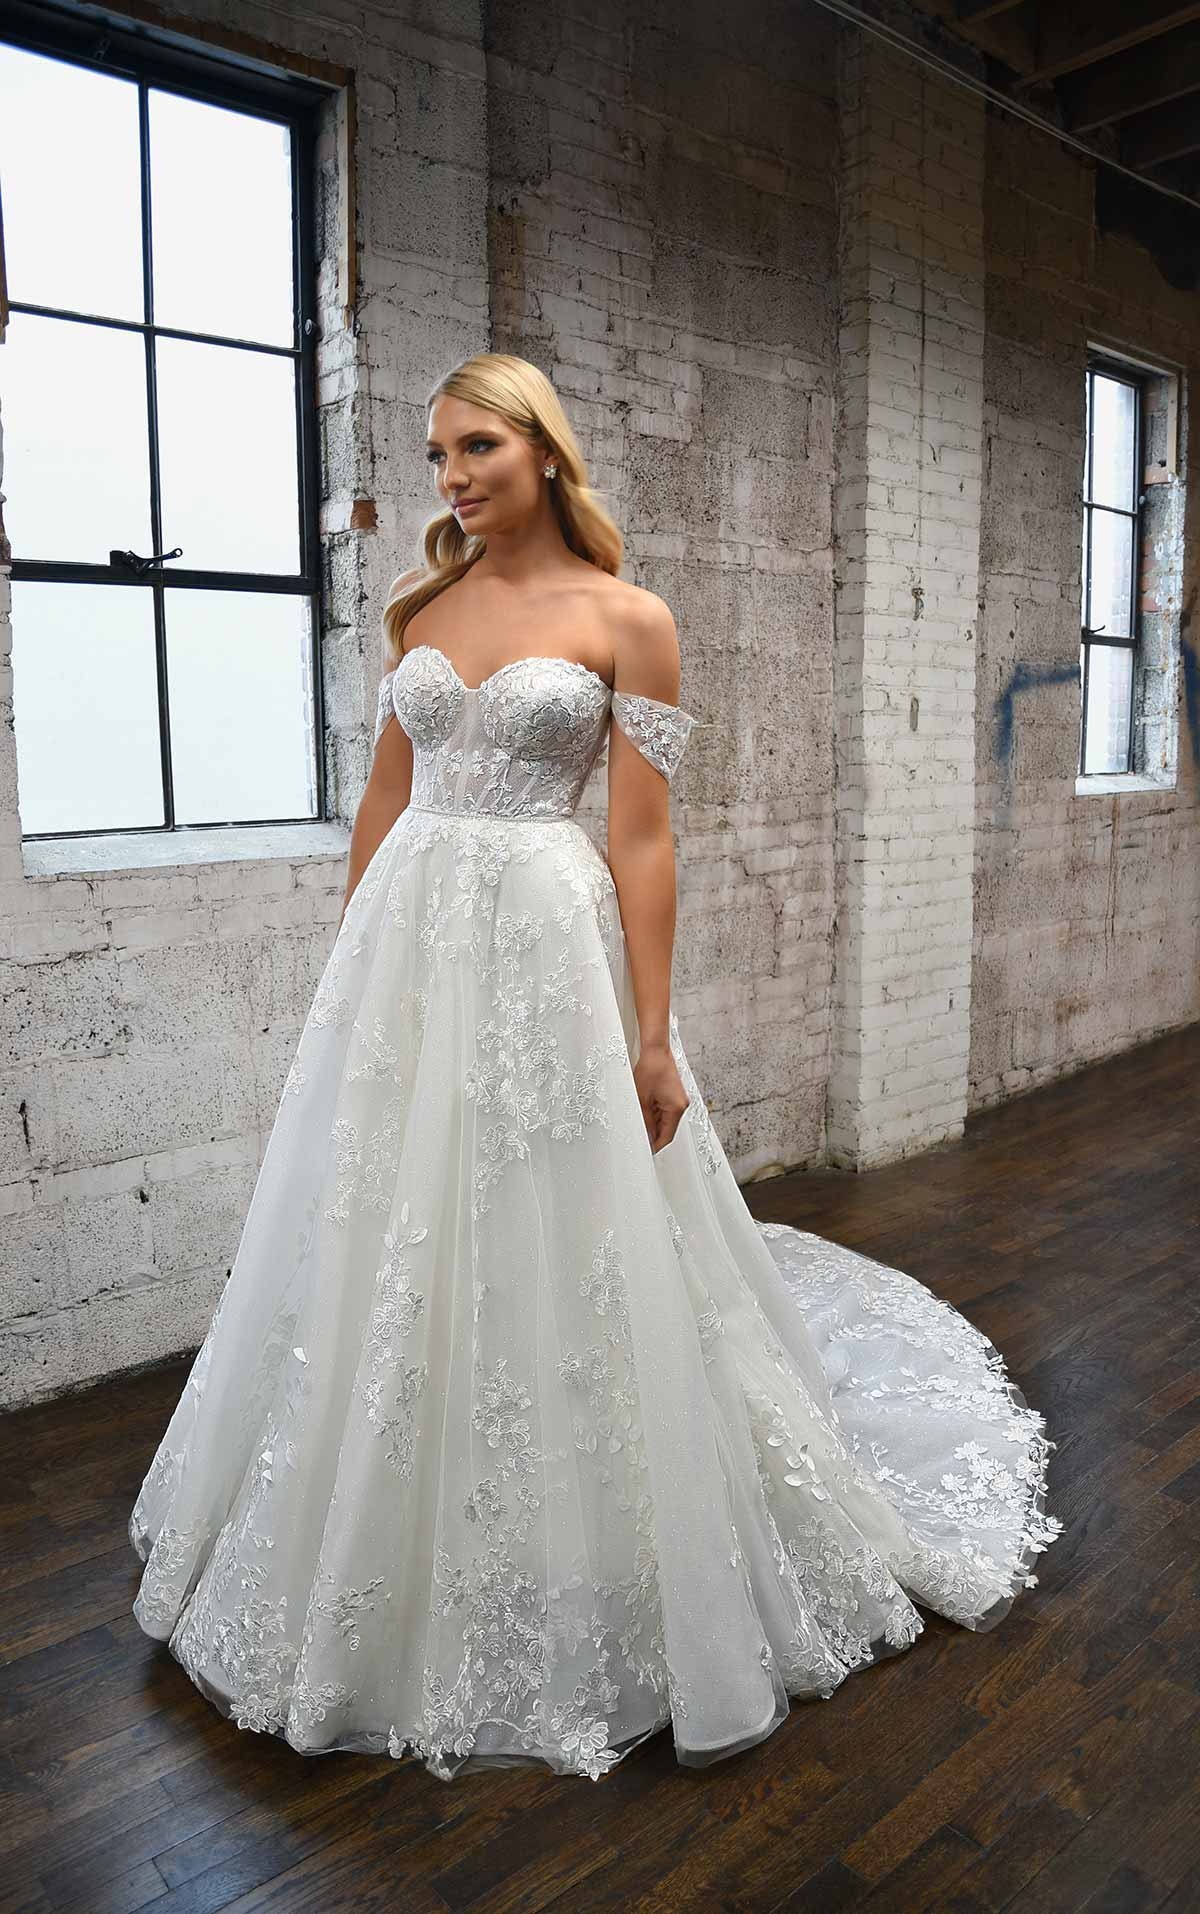 1342 Sweetheart Off-the-Shoulder Wedding Dress with Floral Lace Details by Martina Liana